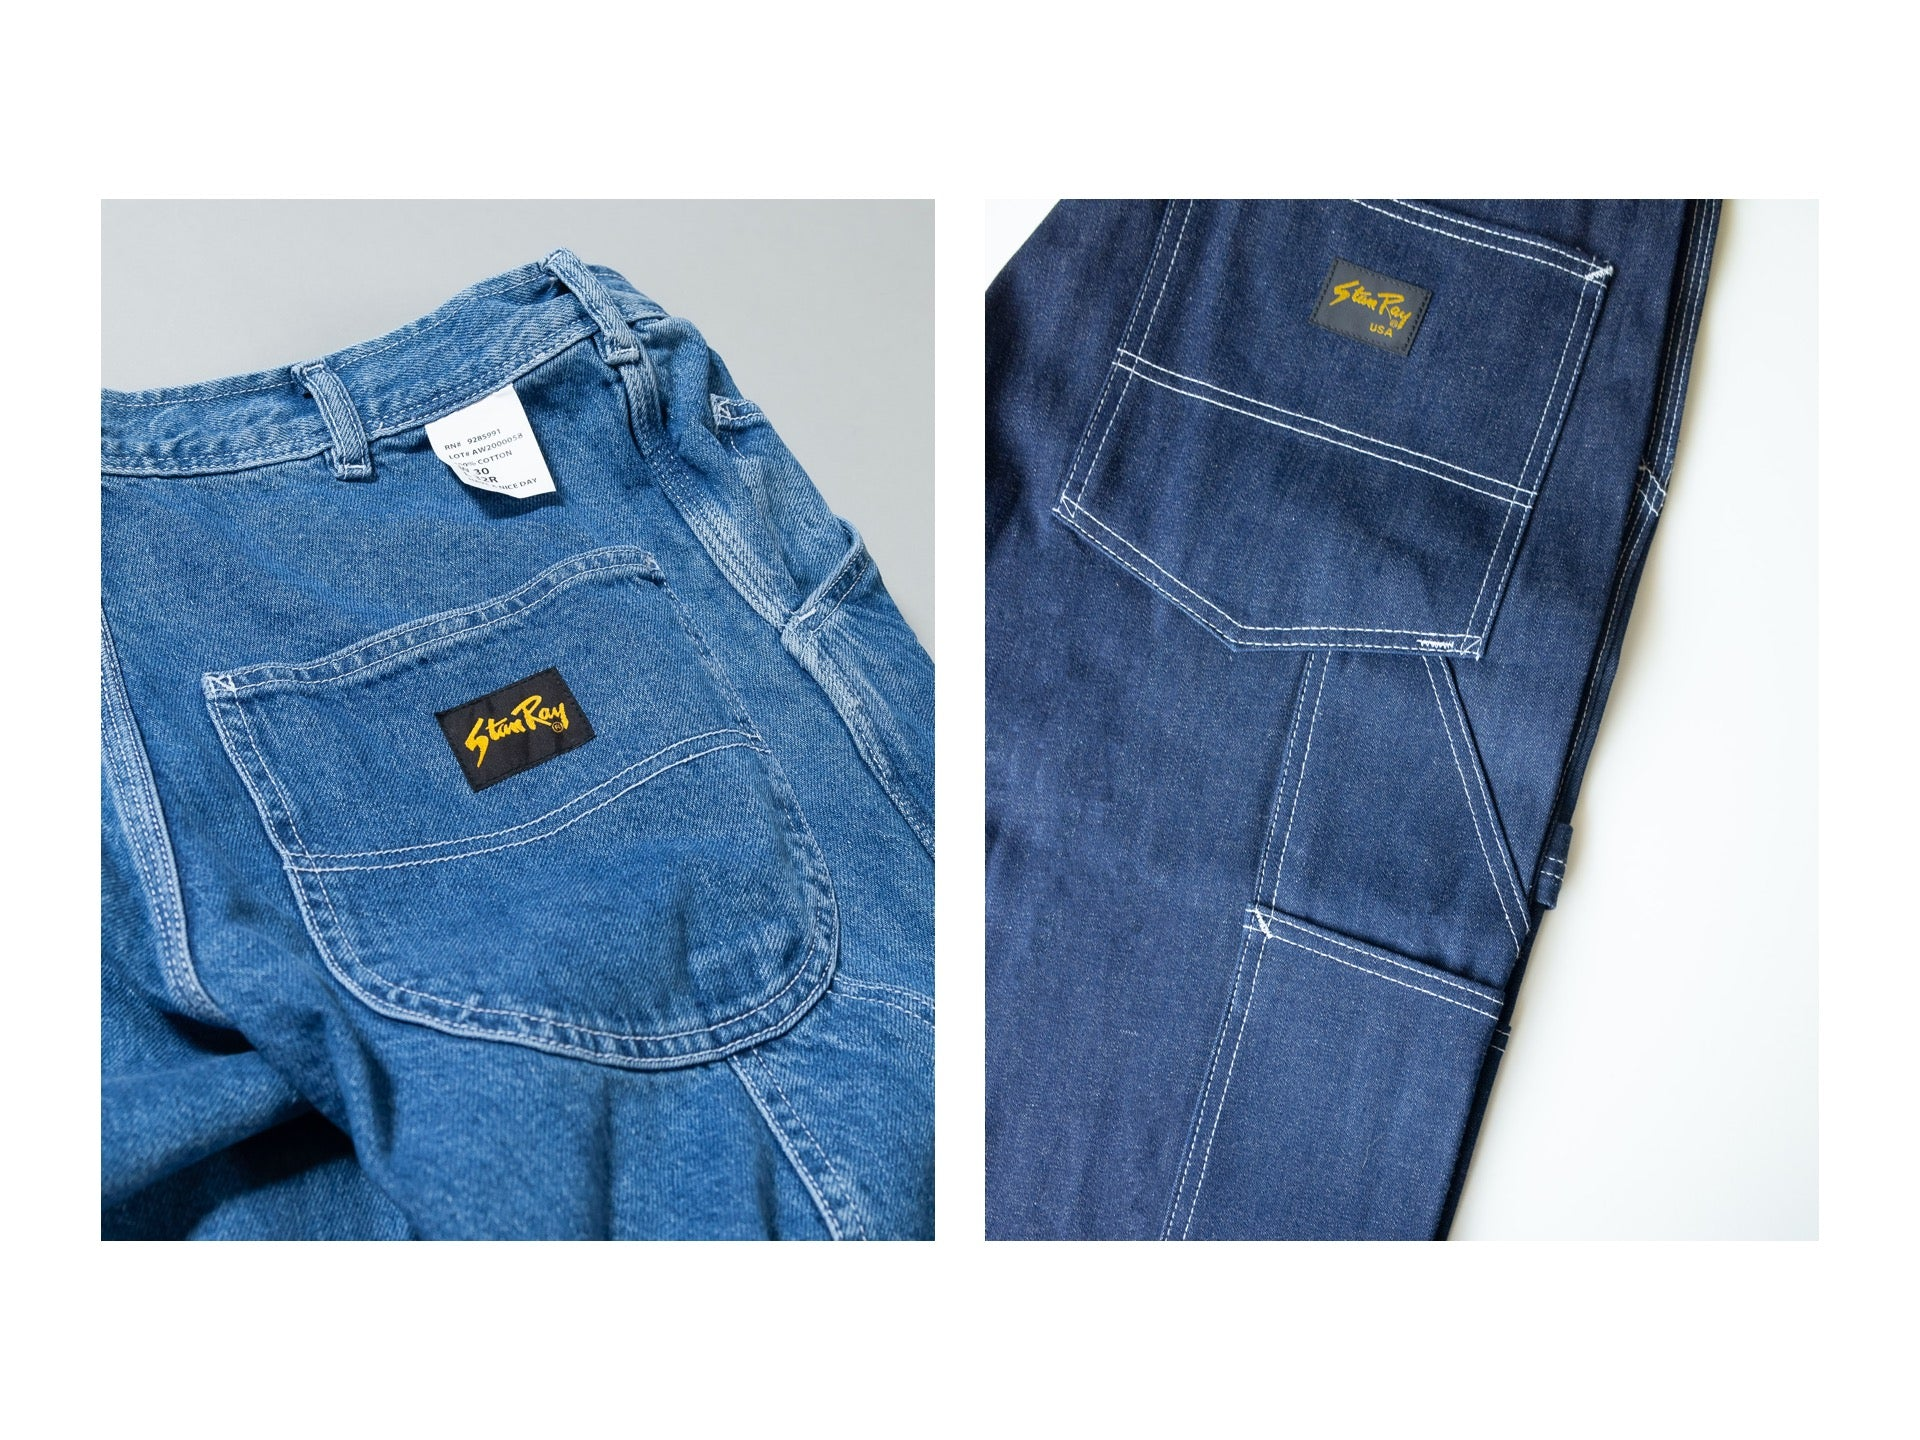 Stan Ray Rinse and dry denim details